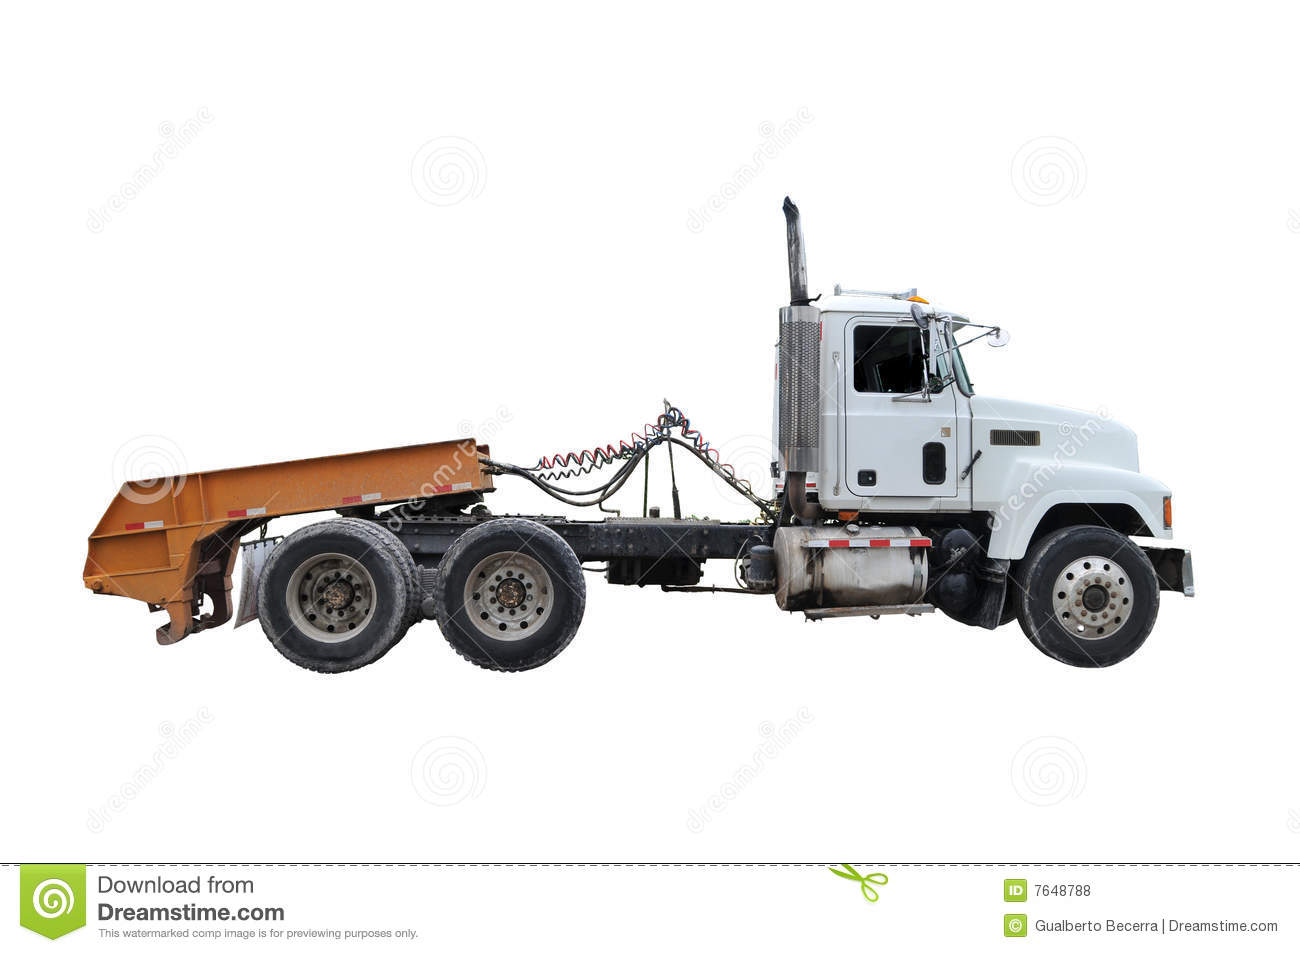 Tractor Trailer Stock : Tractor trailer royalty free stock photos image